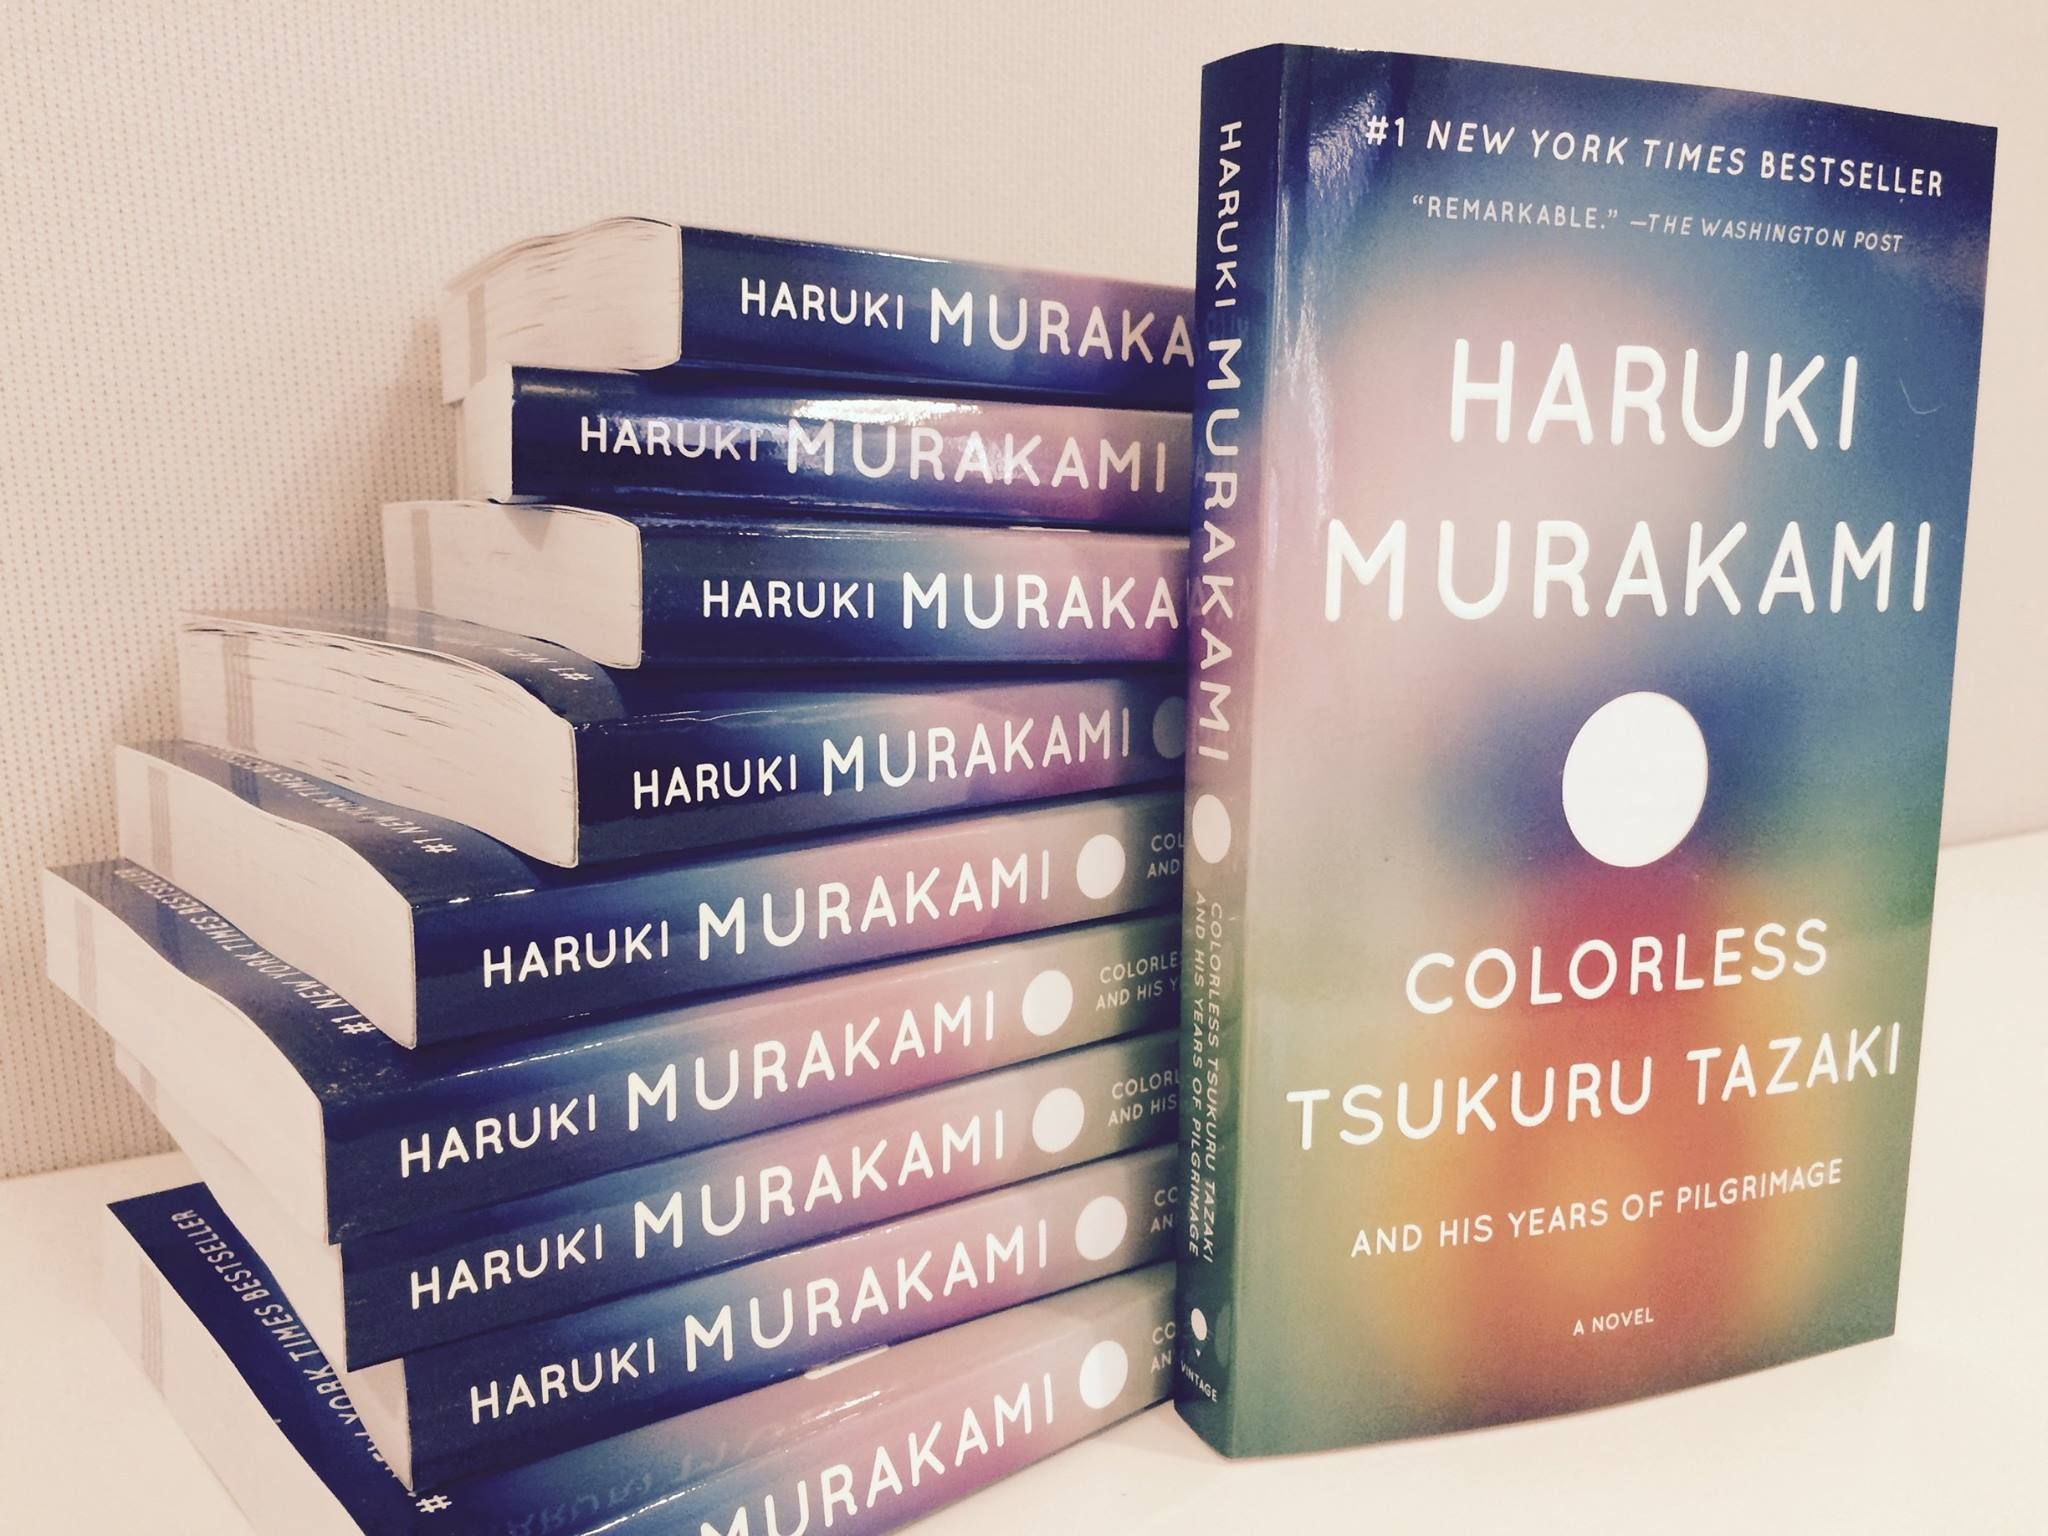 Colorless Tsukuru Tazaki And His Years Of Pilgrimage Available